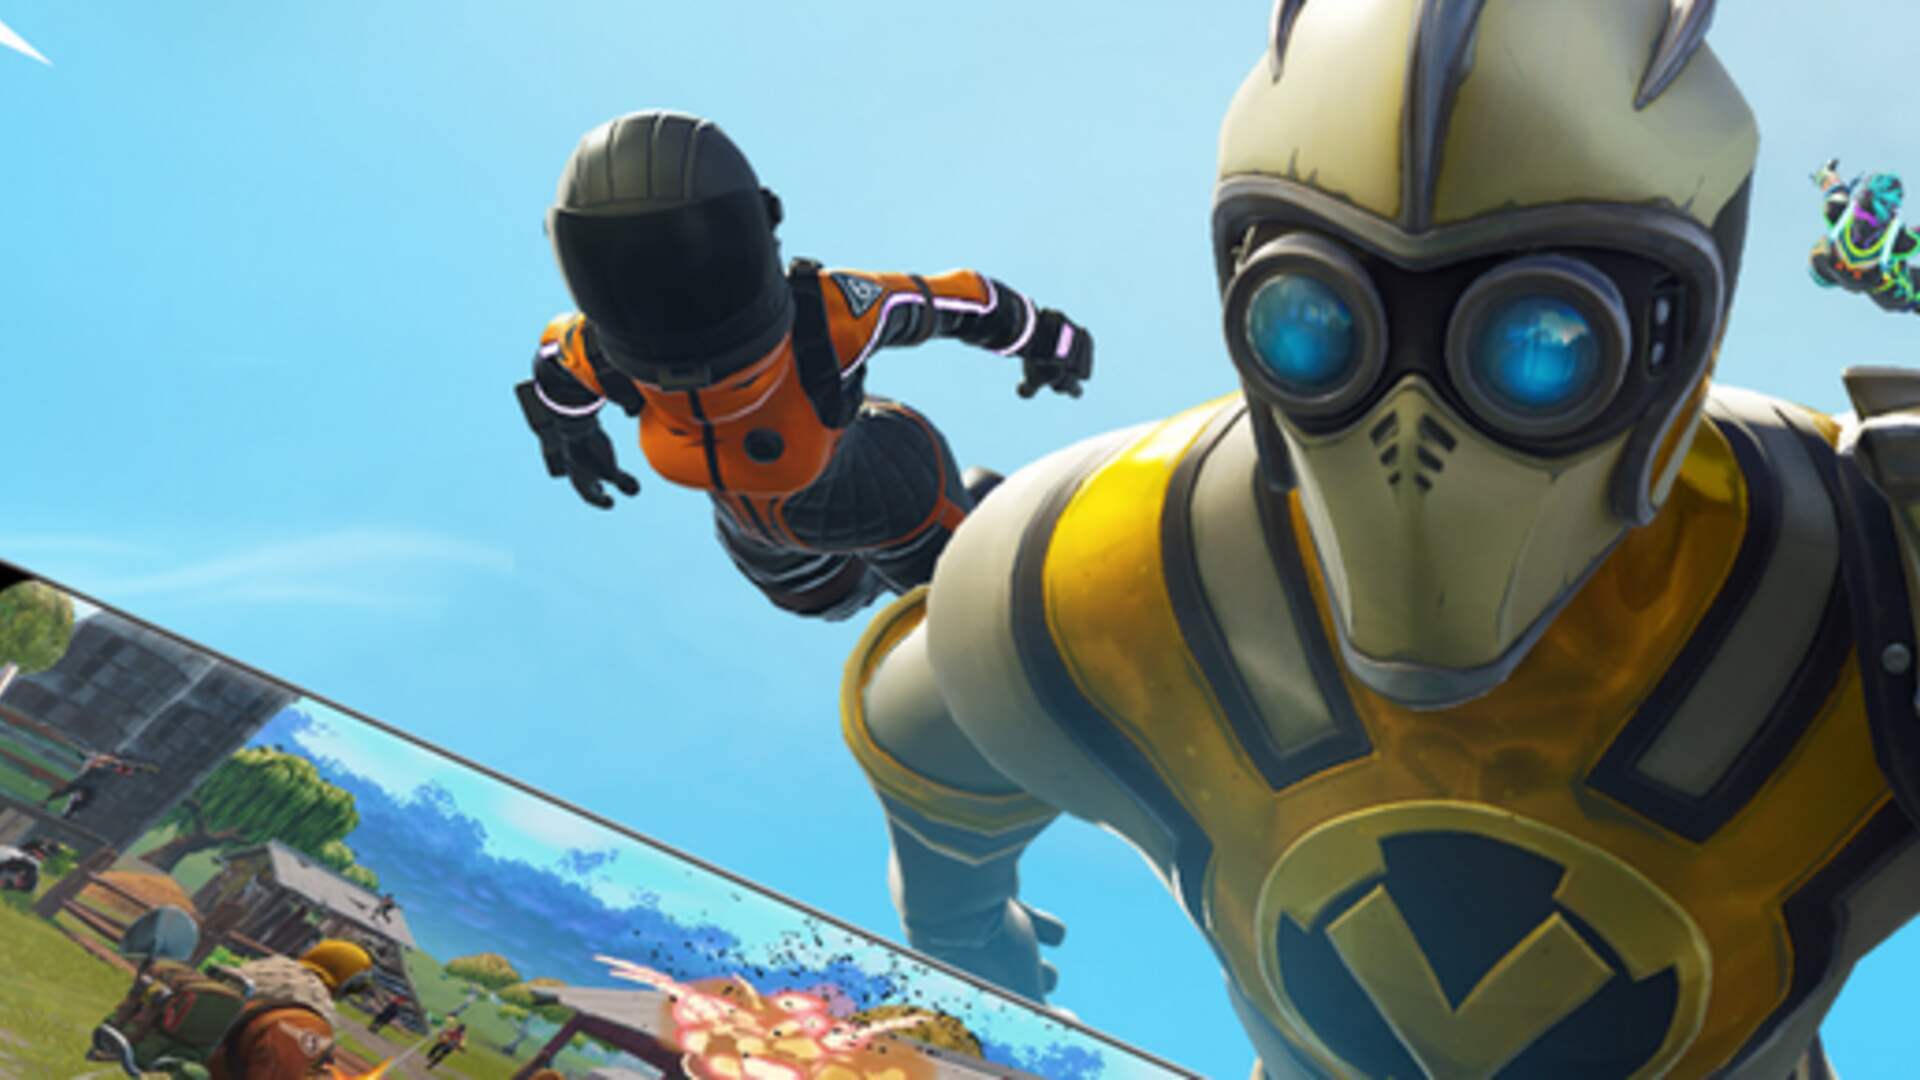 Fortnite Android Beta Now Available For Everyone, No Invite Required